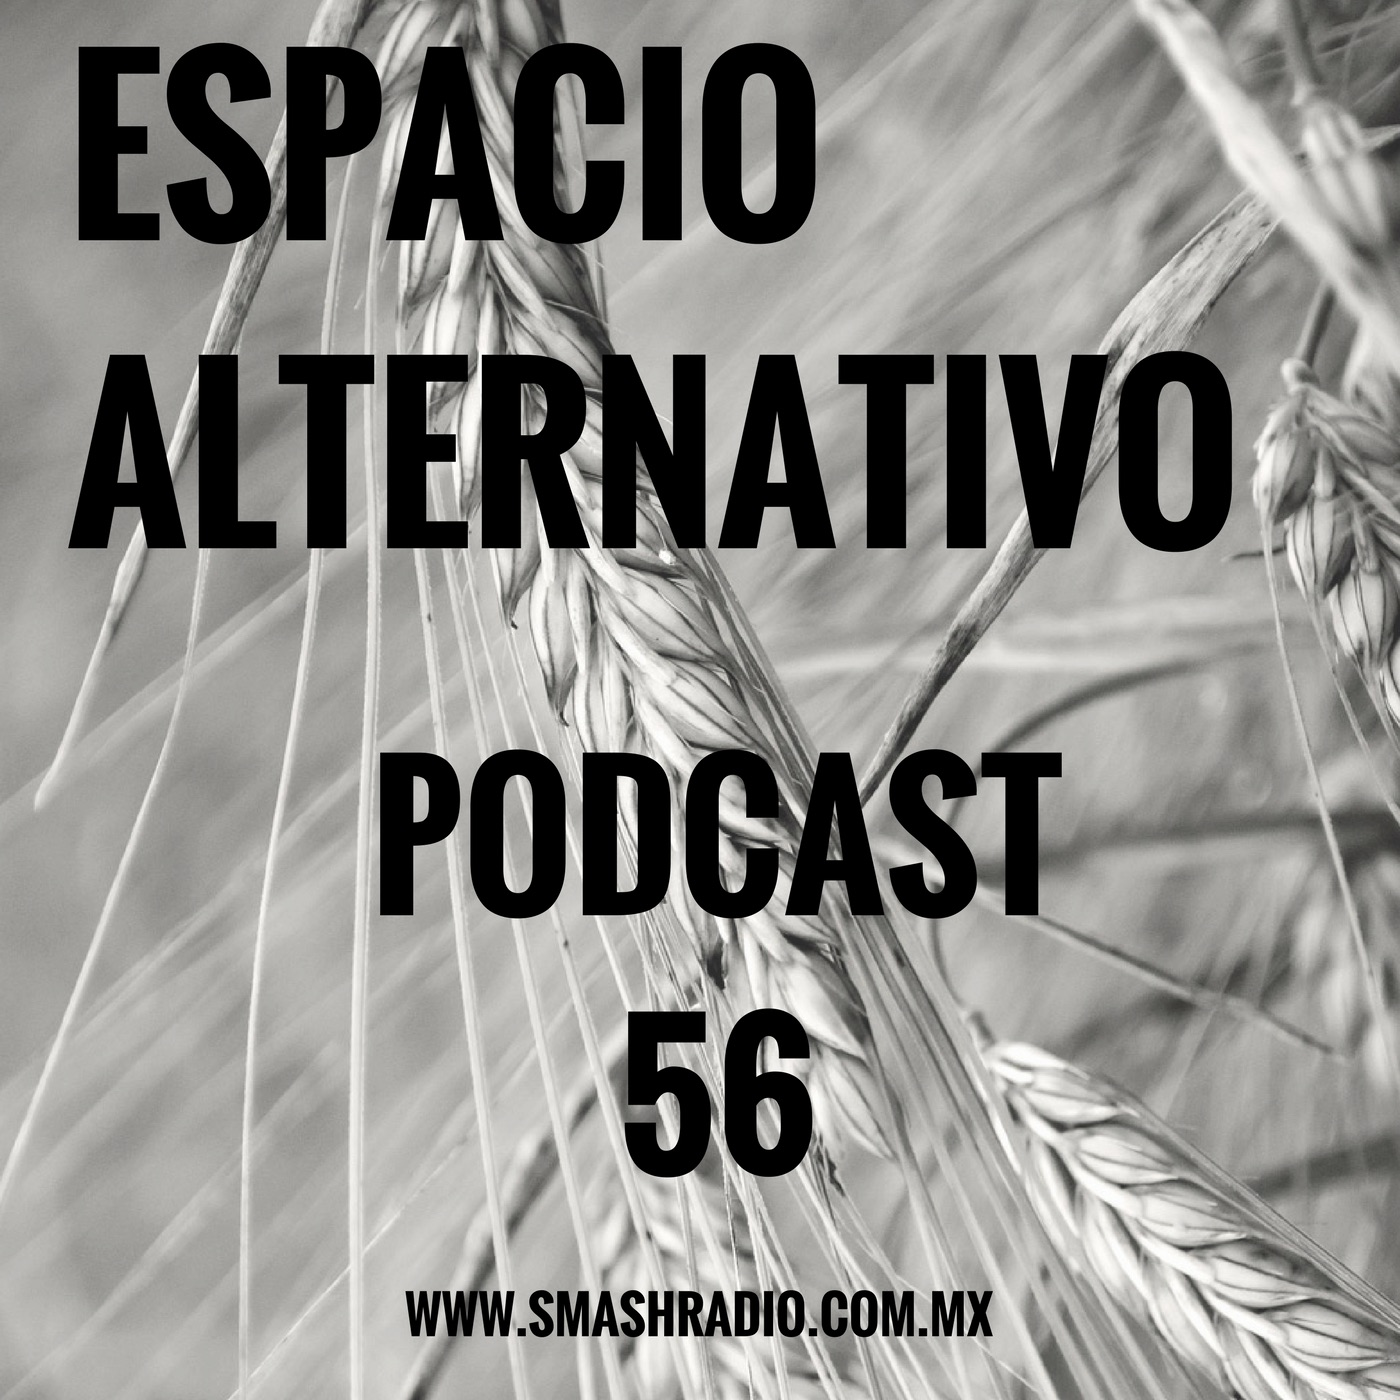 ESPACIO ALTERNATIVO_Podcast_56